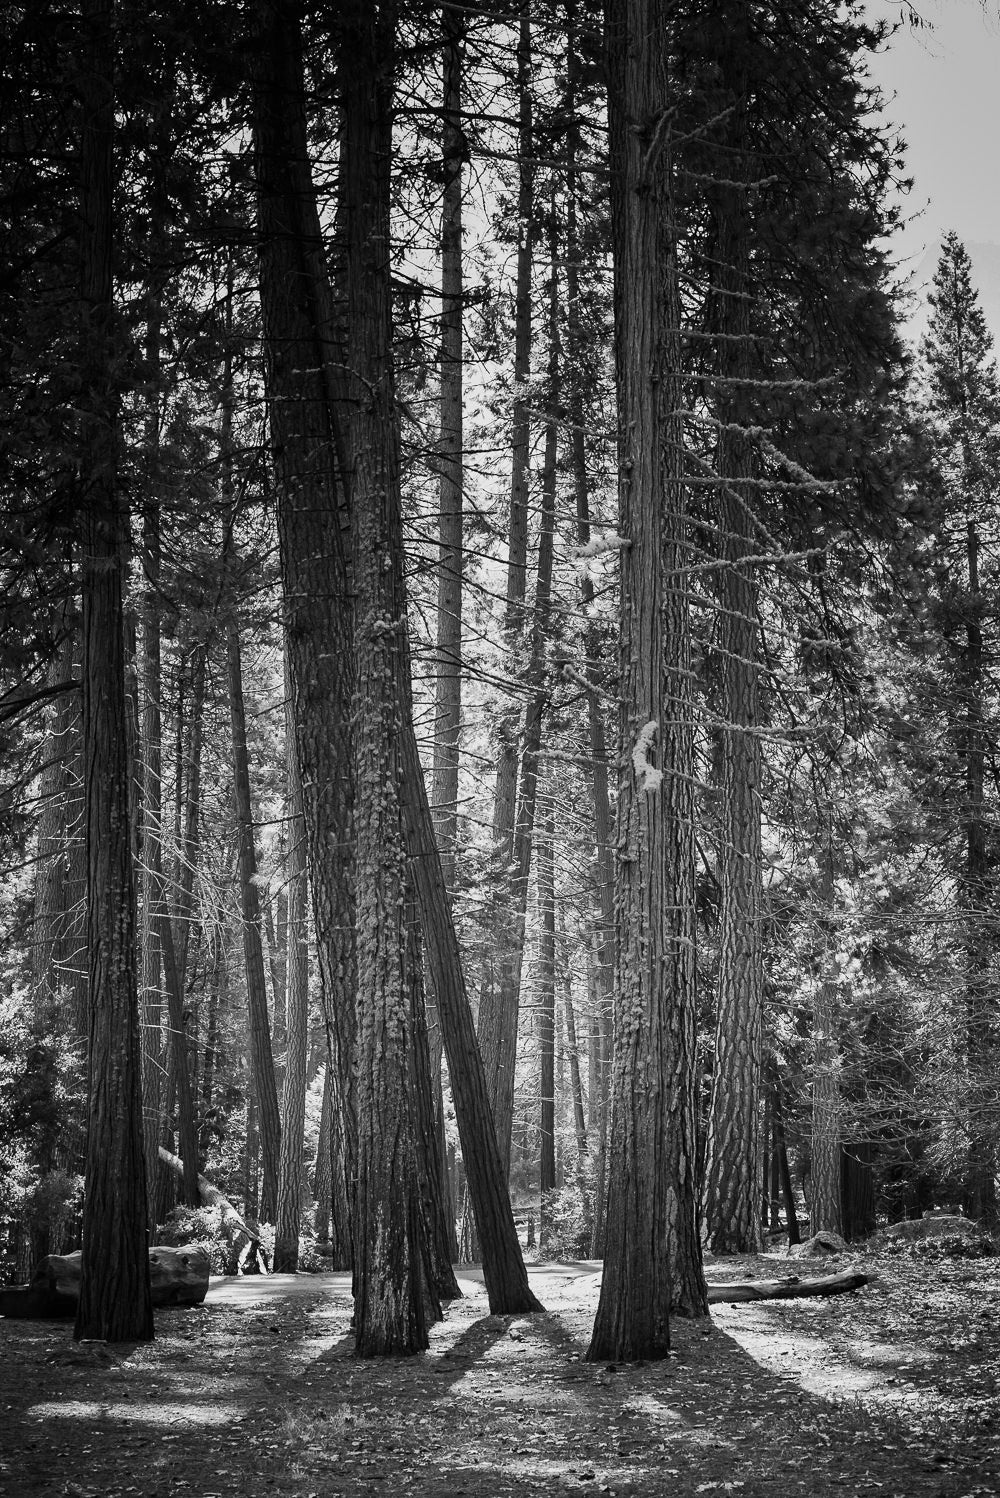 Red Wood Tree Forest B&W Photographic Art Print